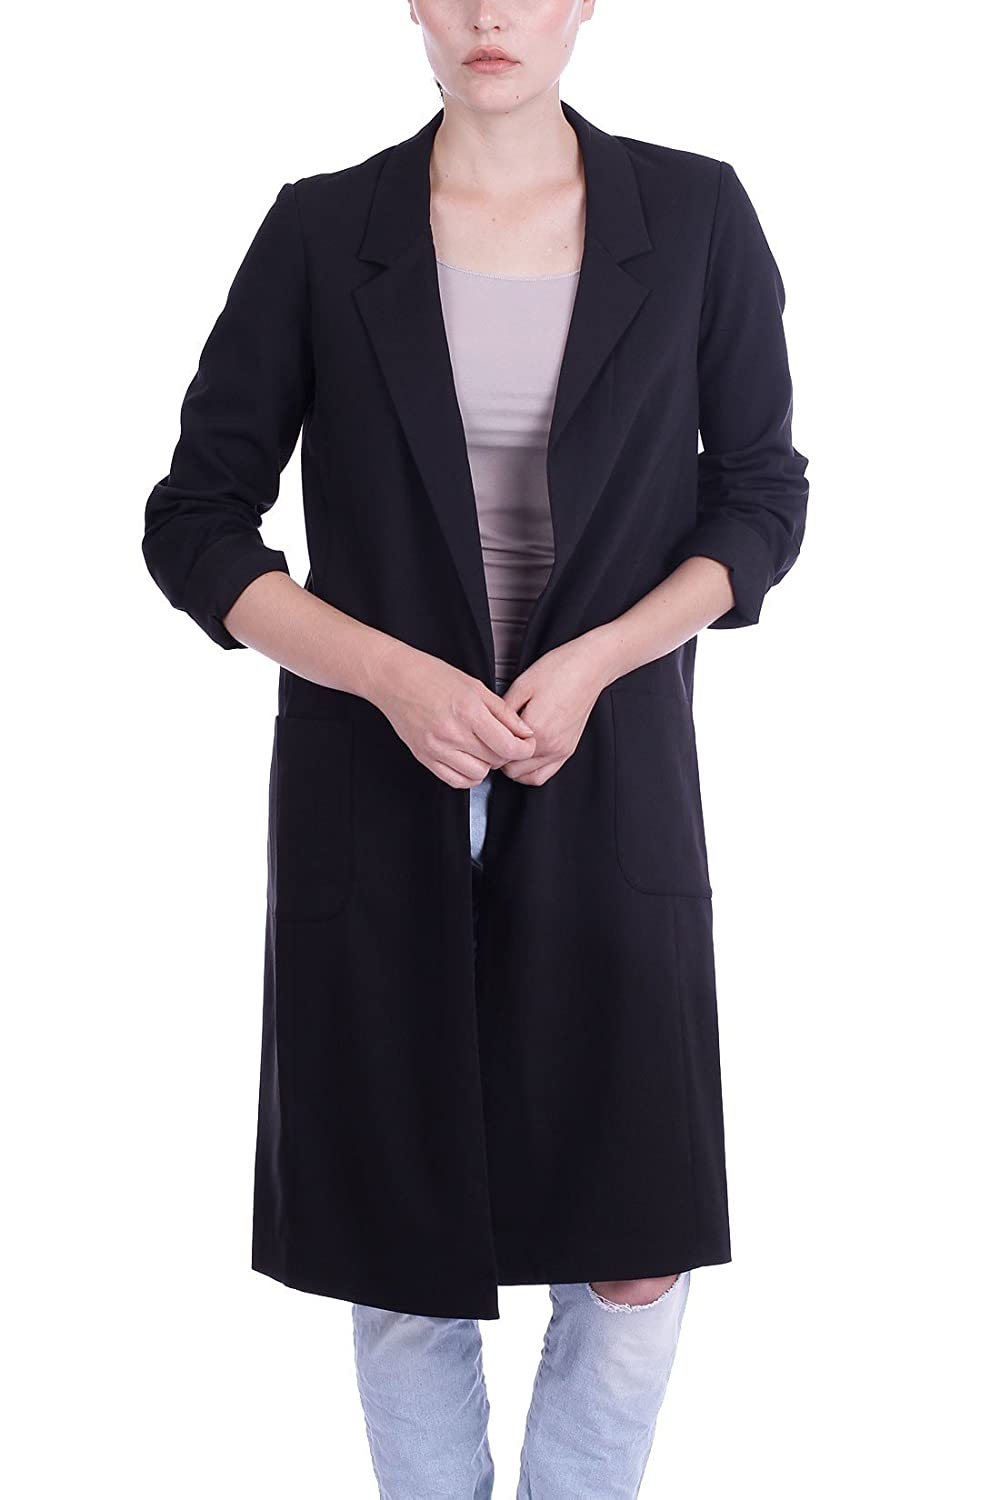 SACK'S Damen Longblazer - Black